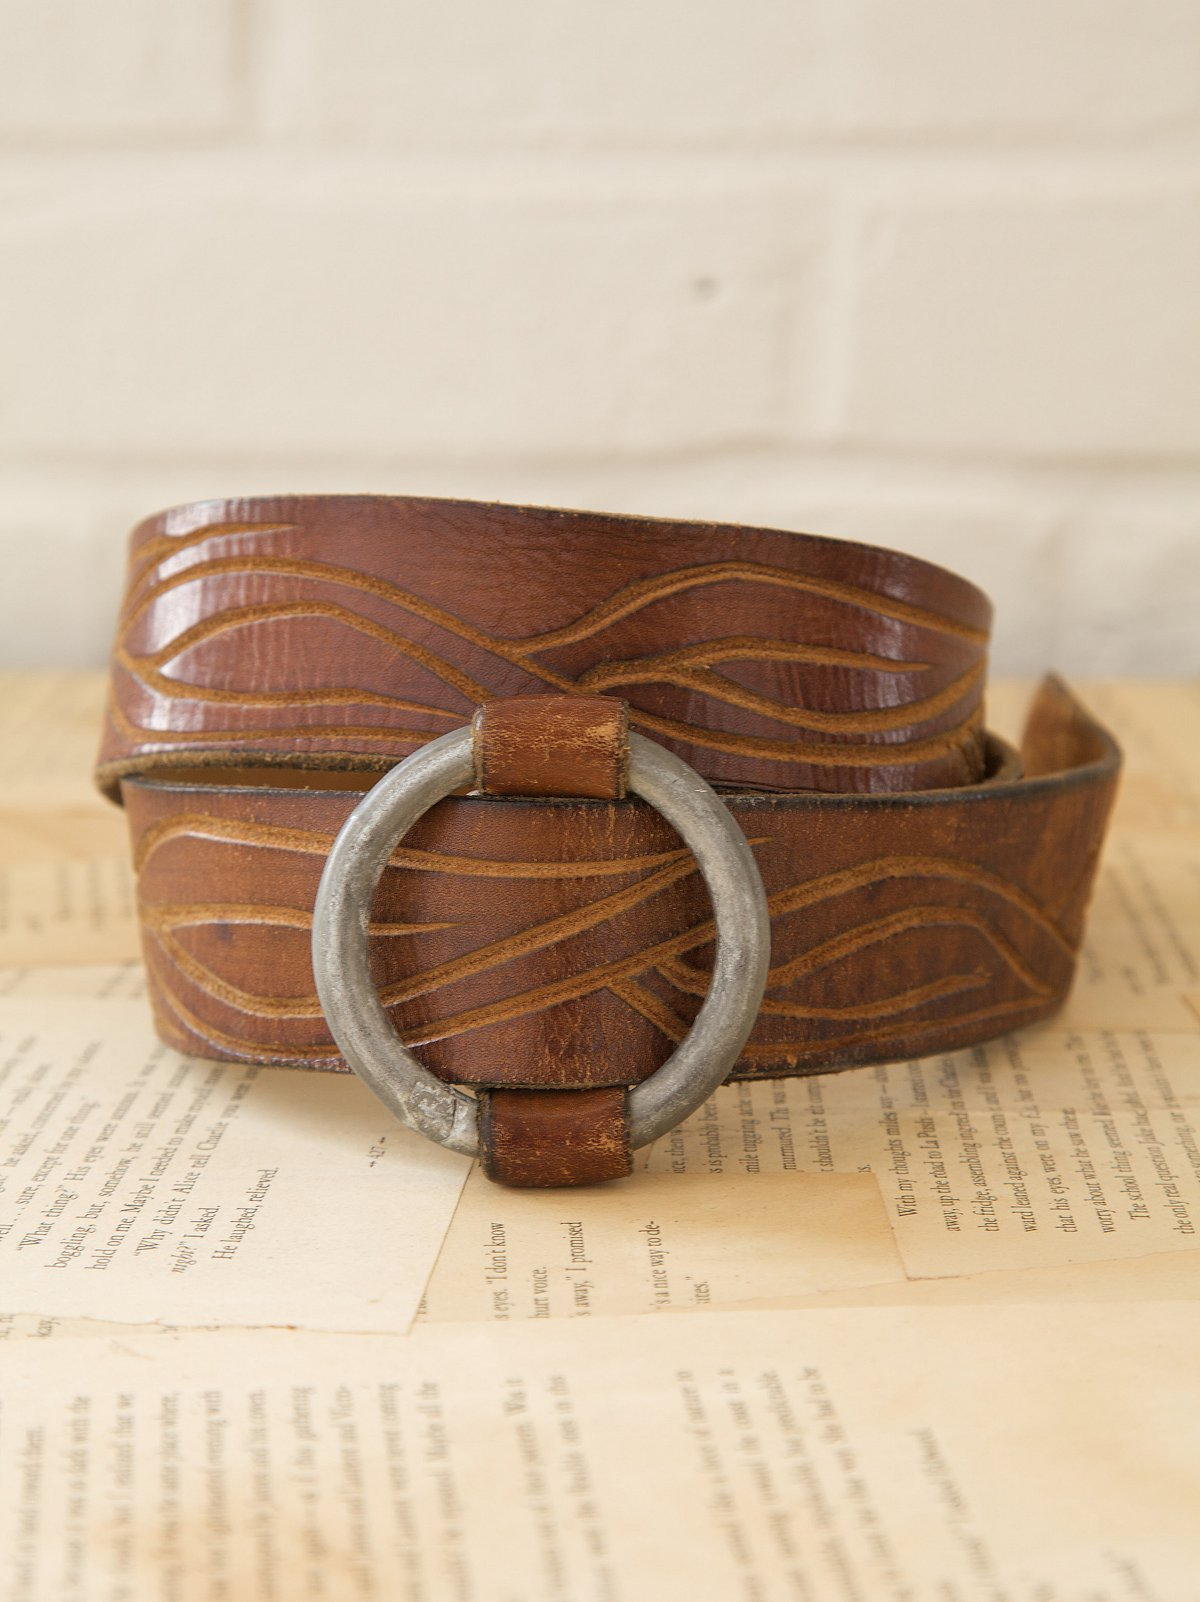 Vintage Leather Belt with Tooling